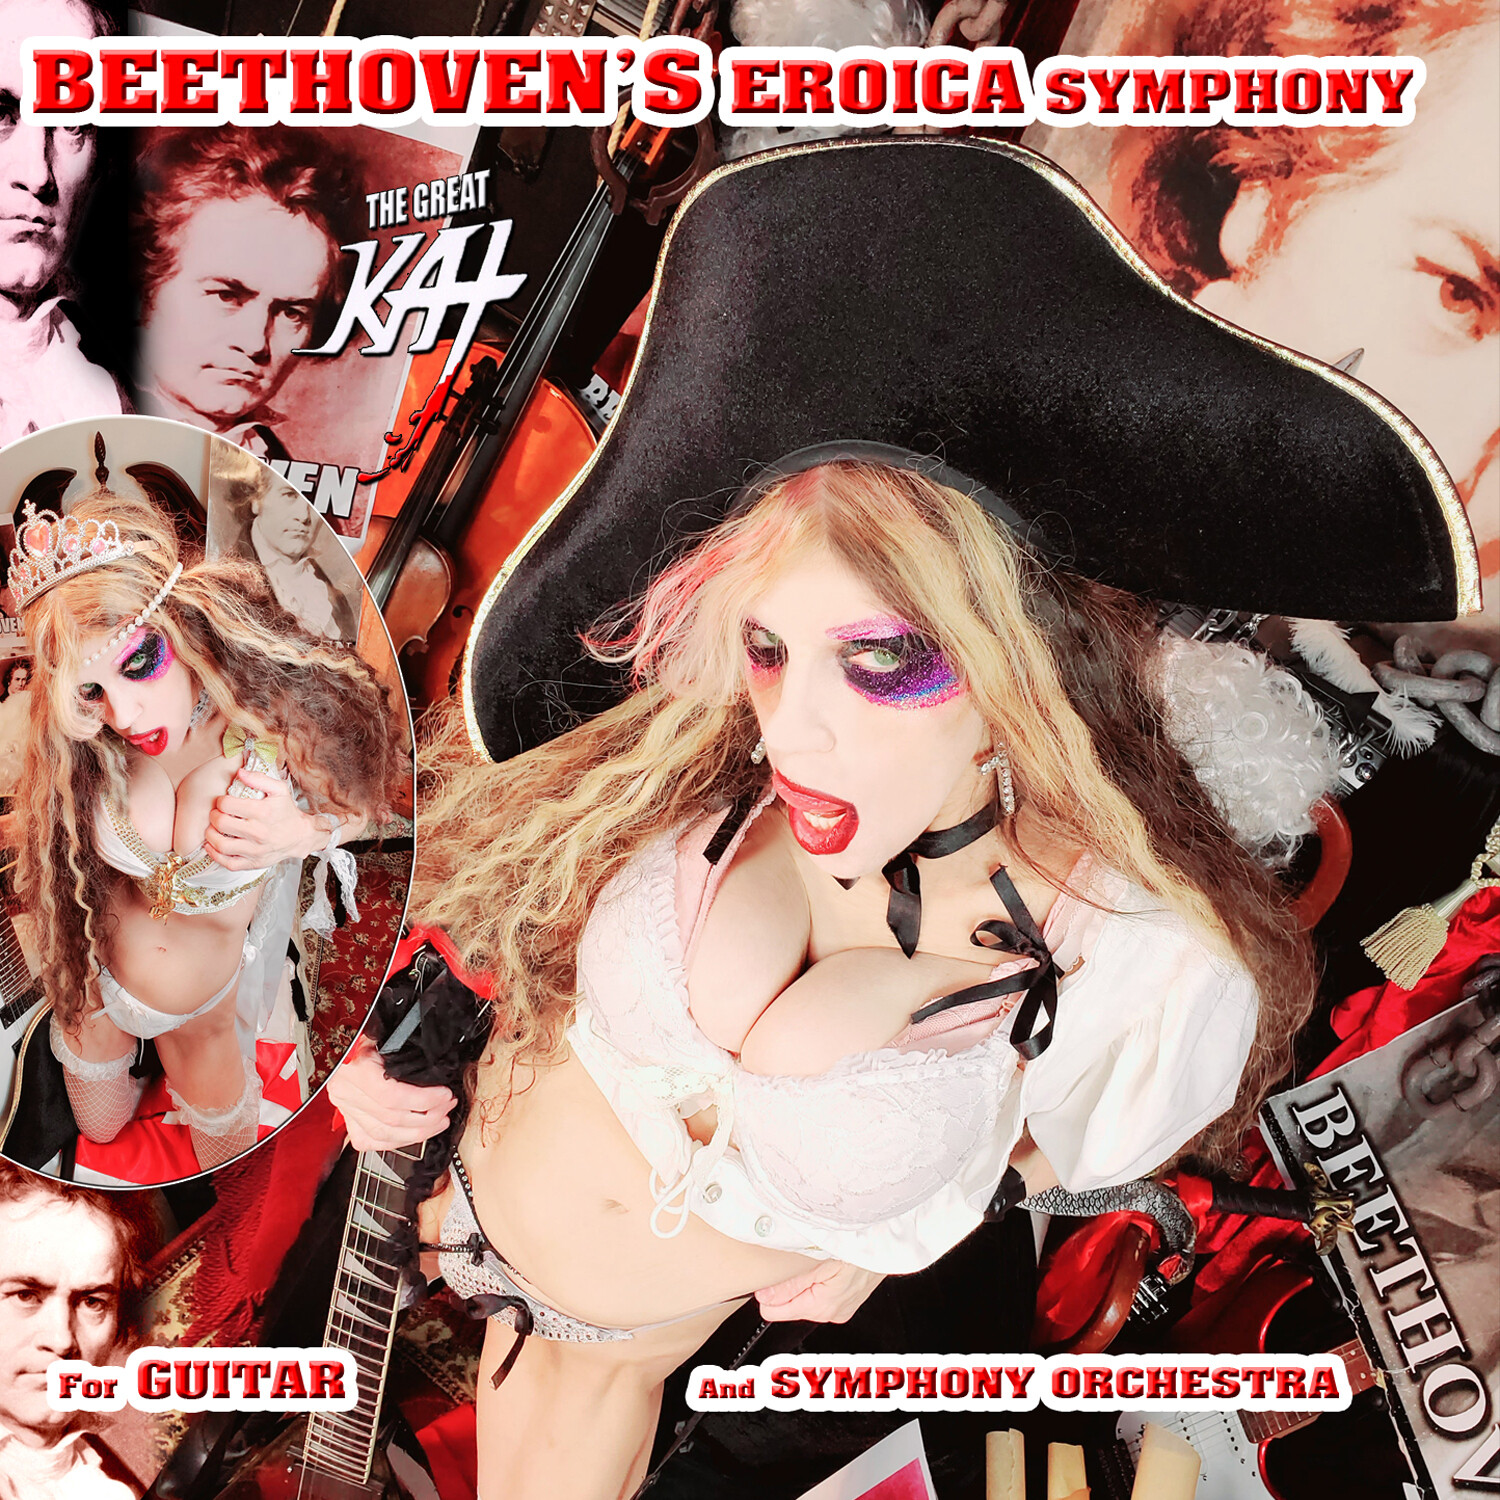 "NEW BEETHOVEN'S ""EROICA SYMPHONY for GUITAR AND SYMPHONY ORCHESTRA"" SINGLE Music CD by THE GREAT KAT (1:08)! PERSONALIZED AUTOGRAPHED by THE GREAT KAT! (Signed to Customer's Name)!"